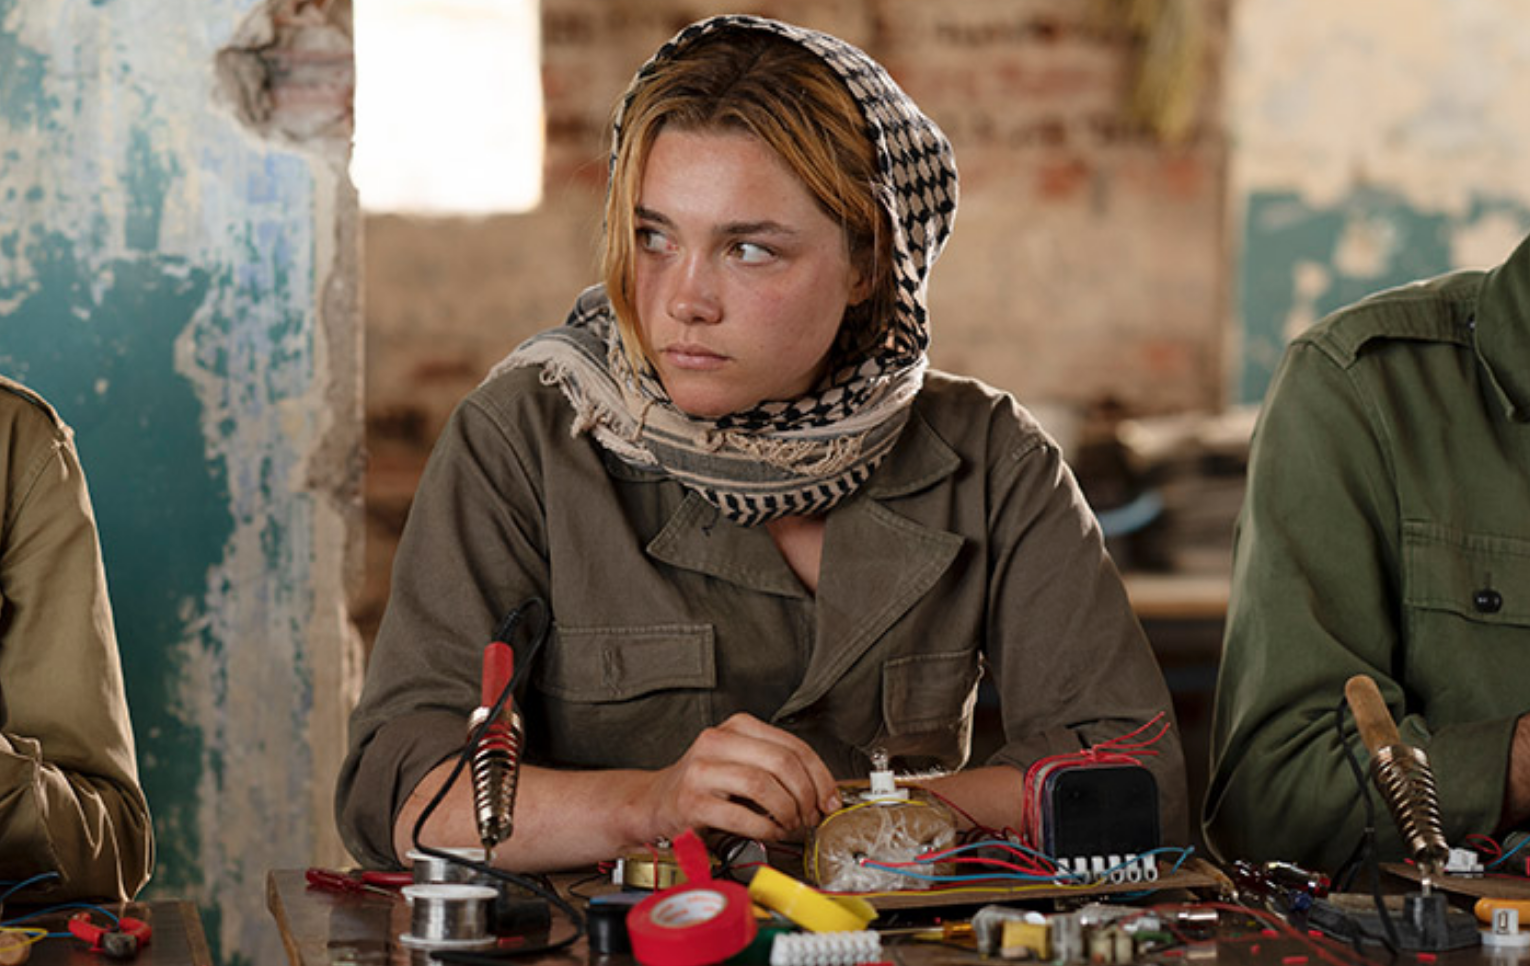 Florence Pugh shines in Park Chan-Wook's miniseries